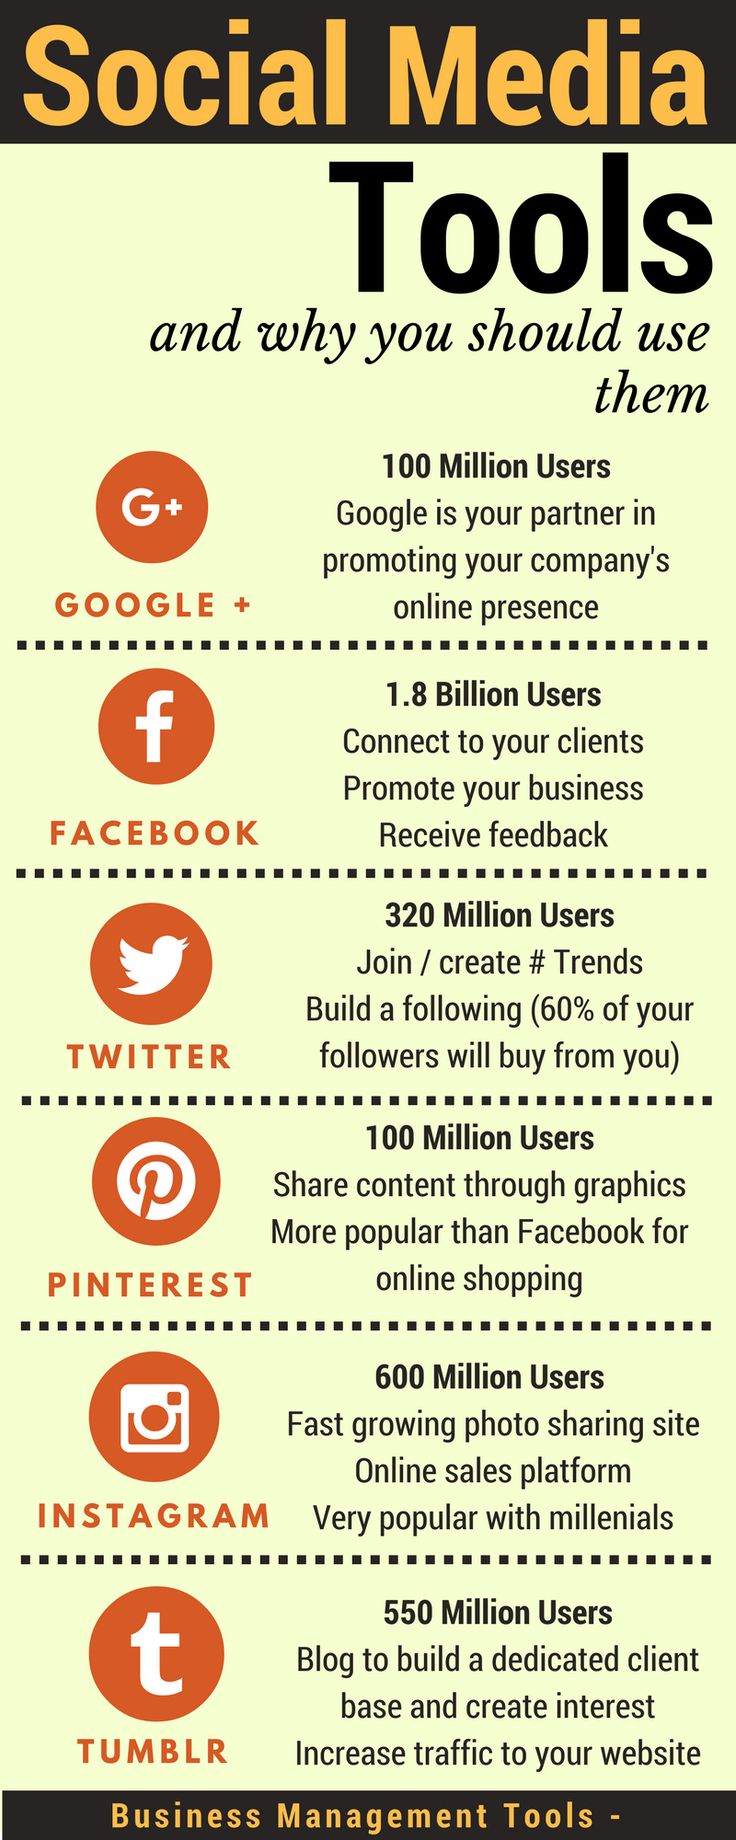 Social media tools for business Why business should use social media